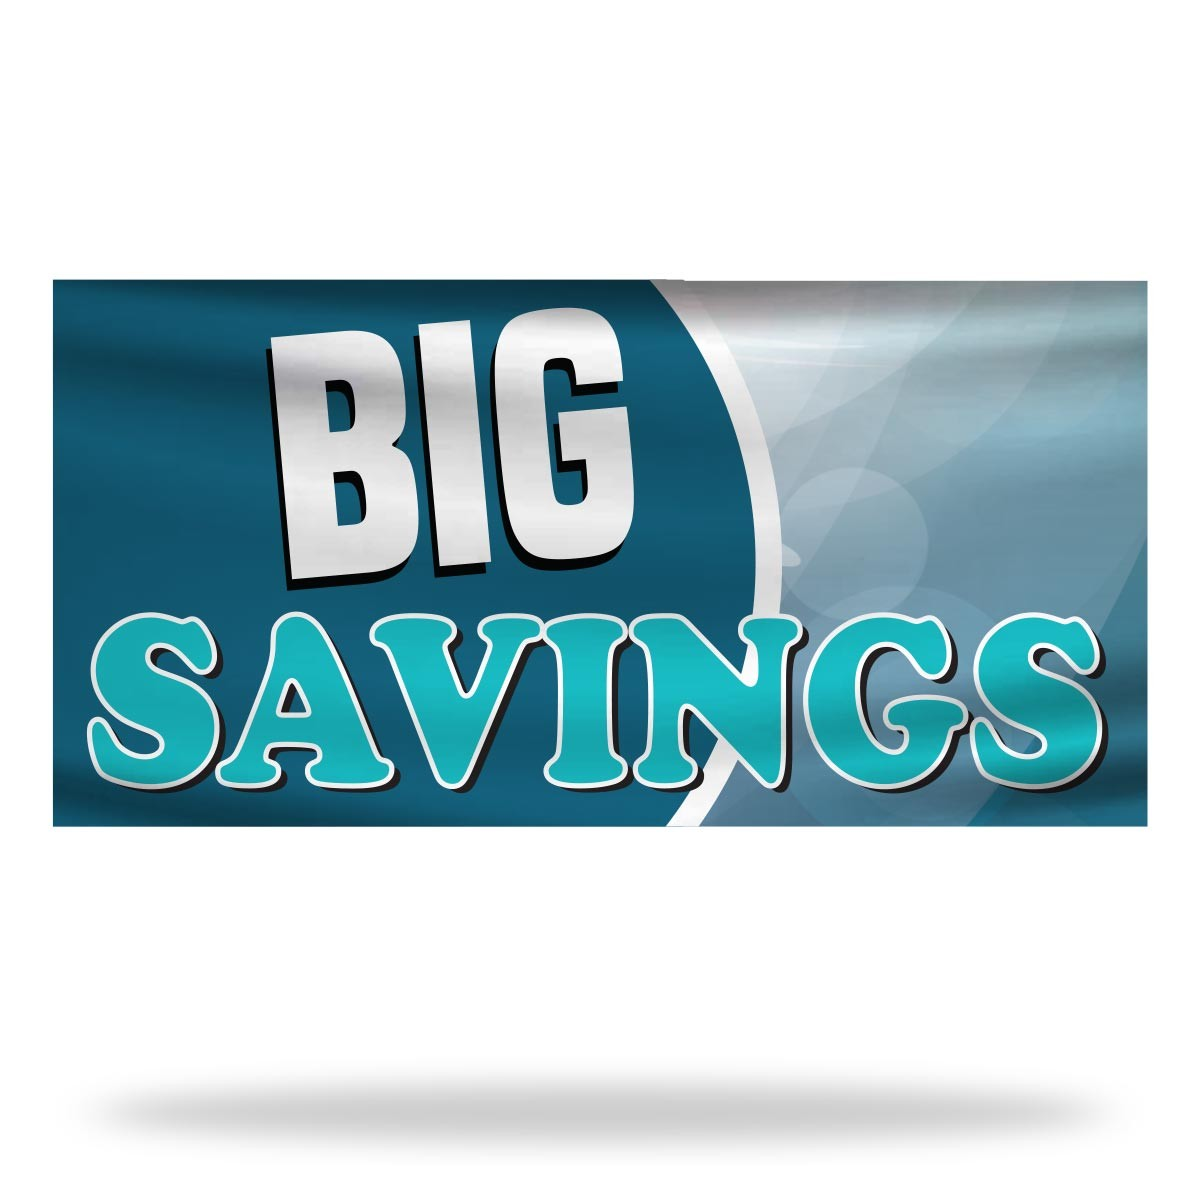 Big Savings Flags & Banners Design 03